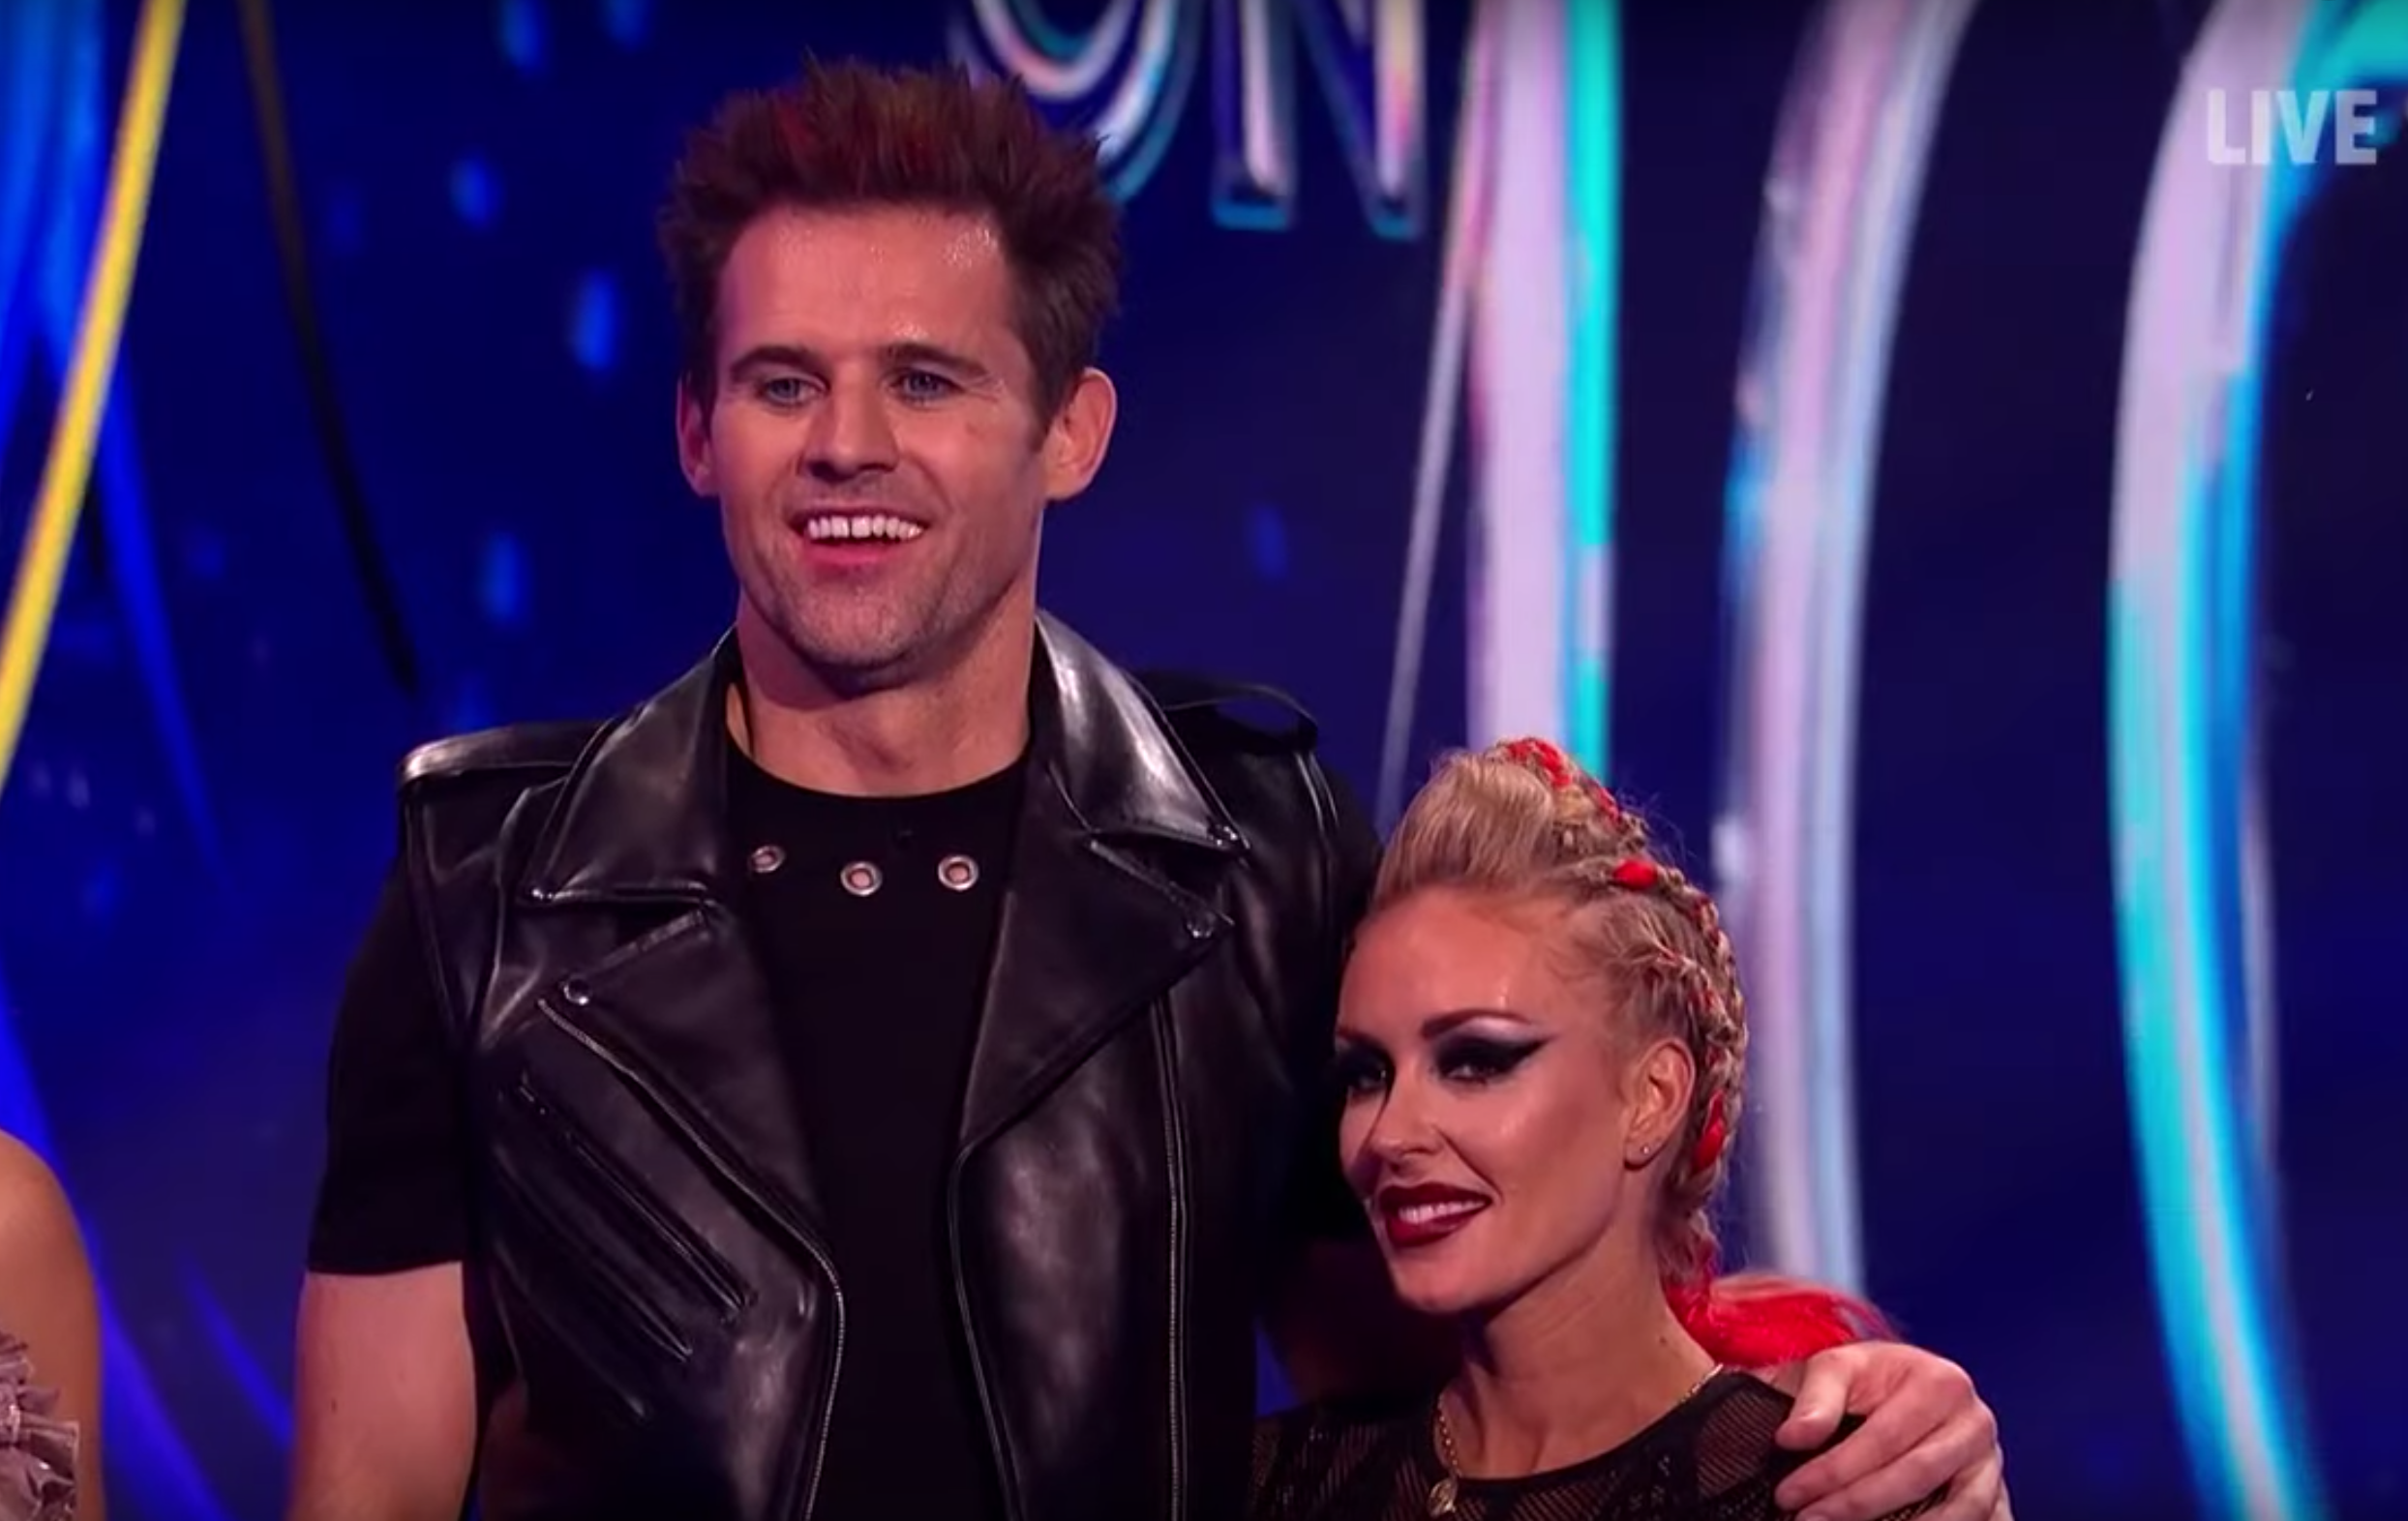 Dancing On Ice star Brianne Delacourt's daughter already calls Kevin Kilbane 'Dad'